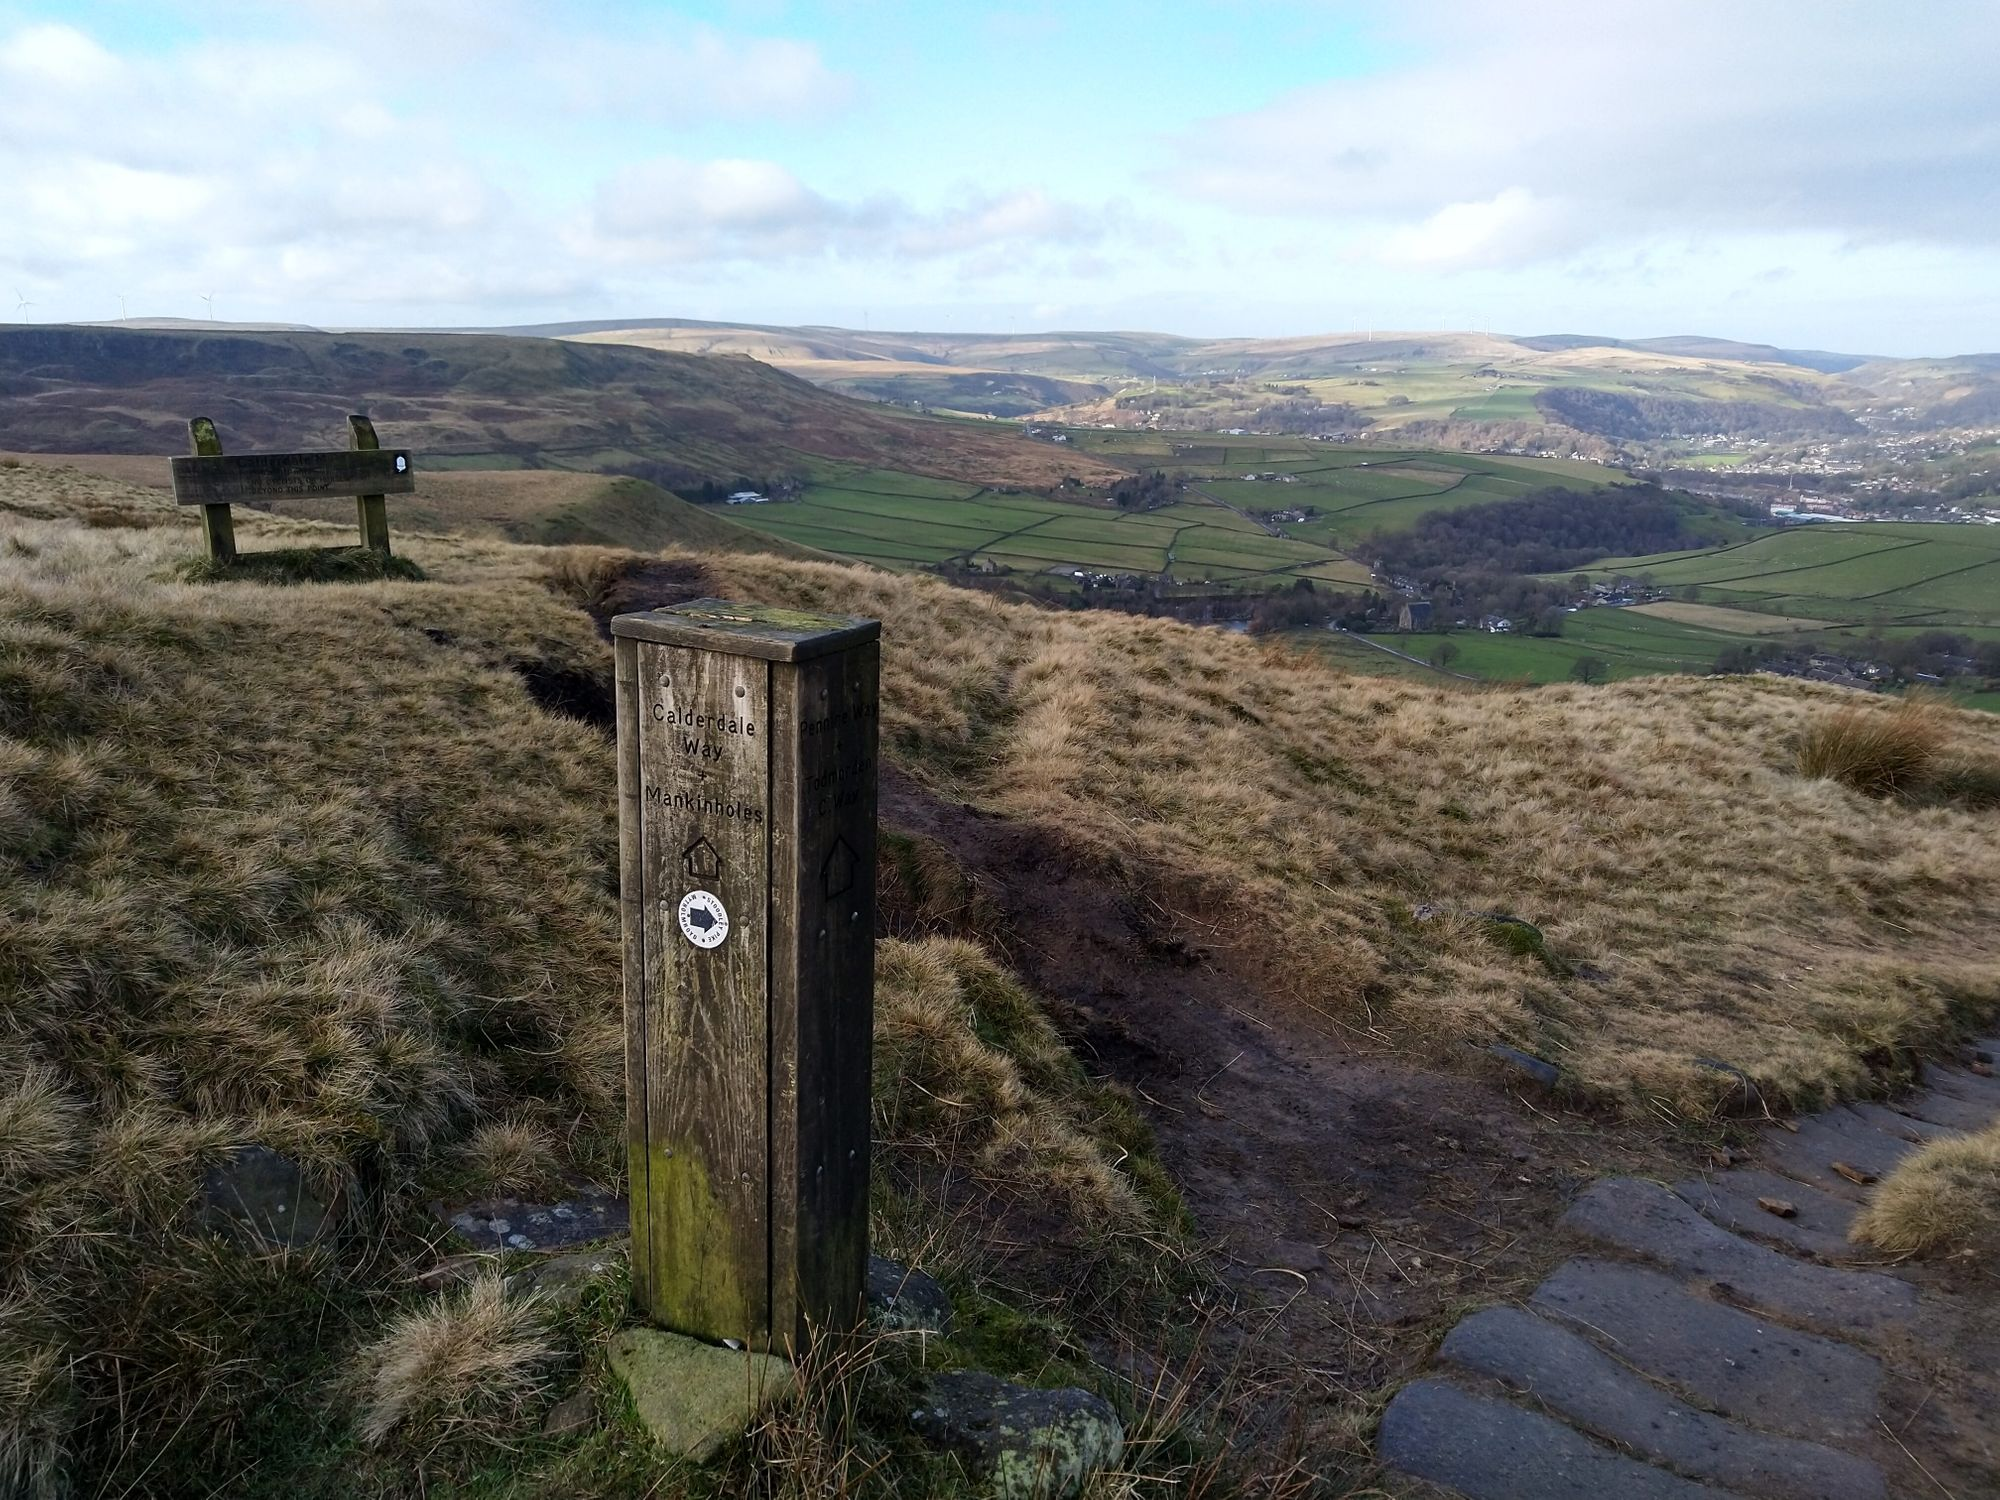 Marker post at the crossing of Pennine Way and Calderdale Way